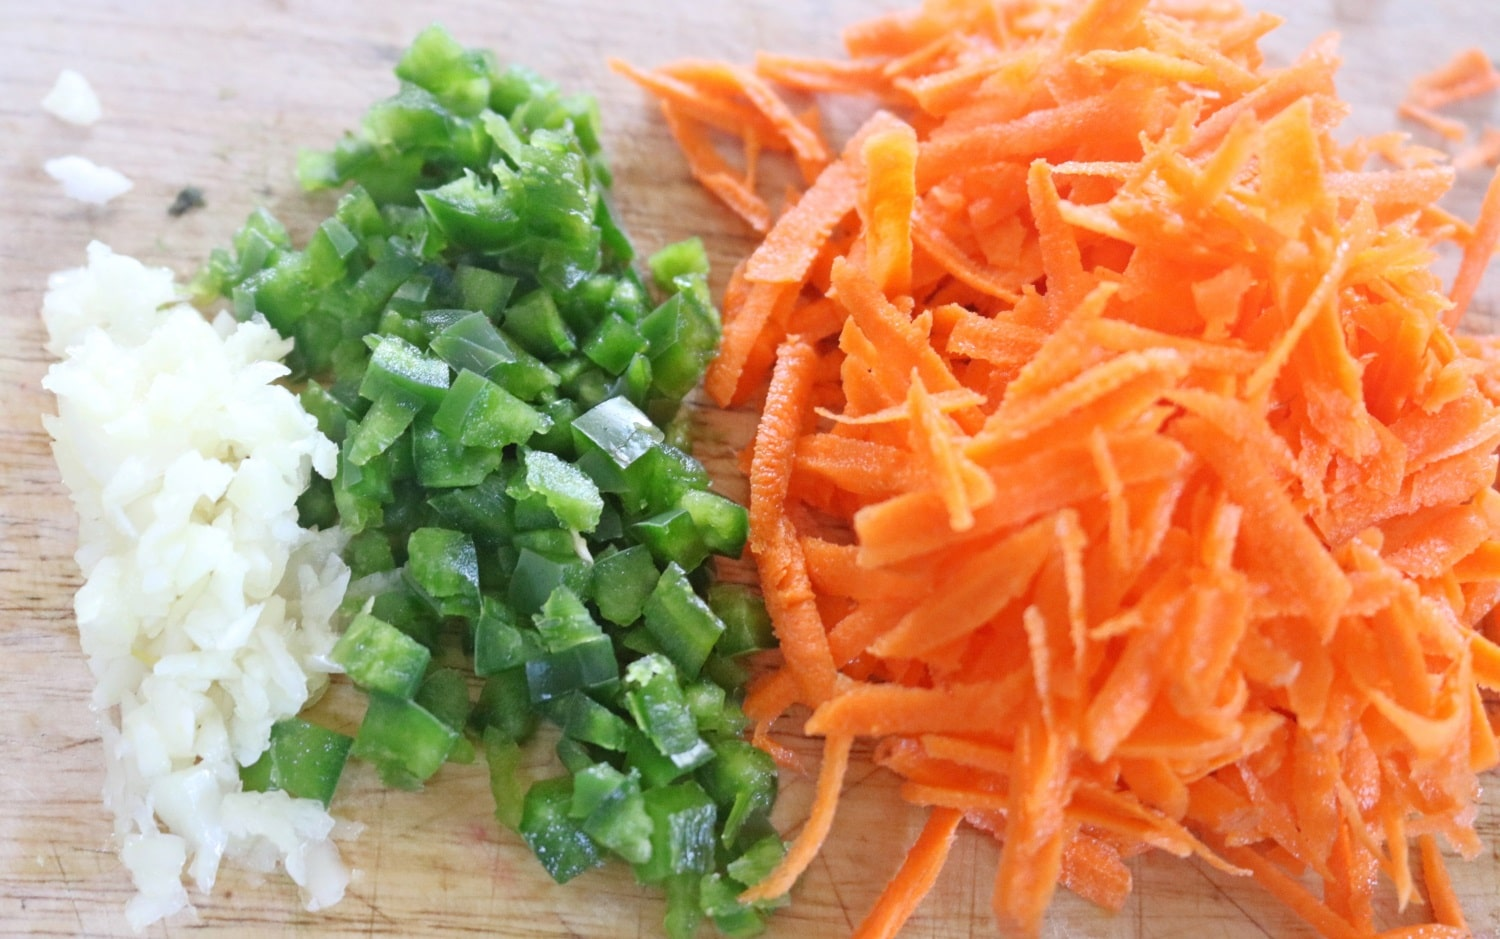 Carrots, green onion and onion all chopped on a wood cutting board